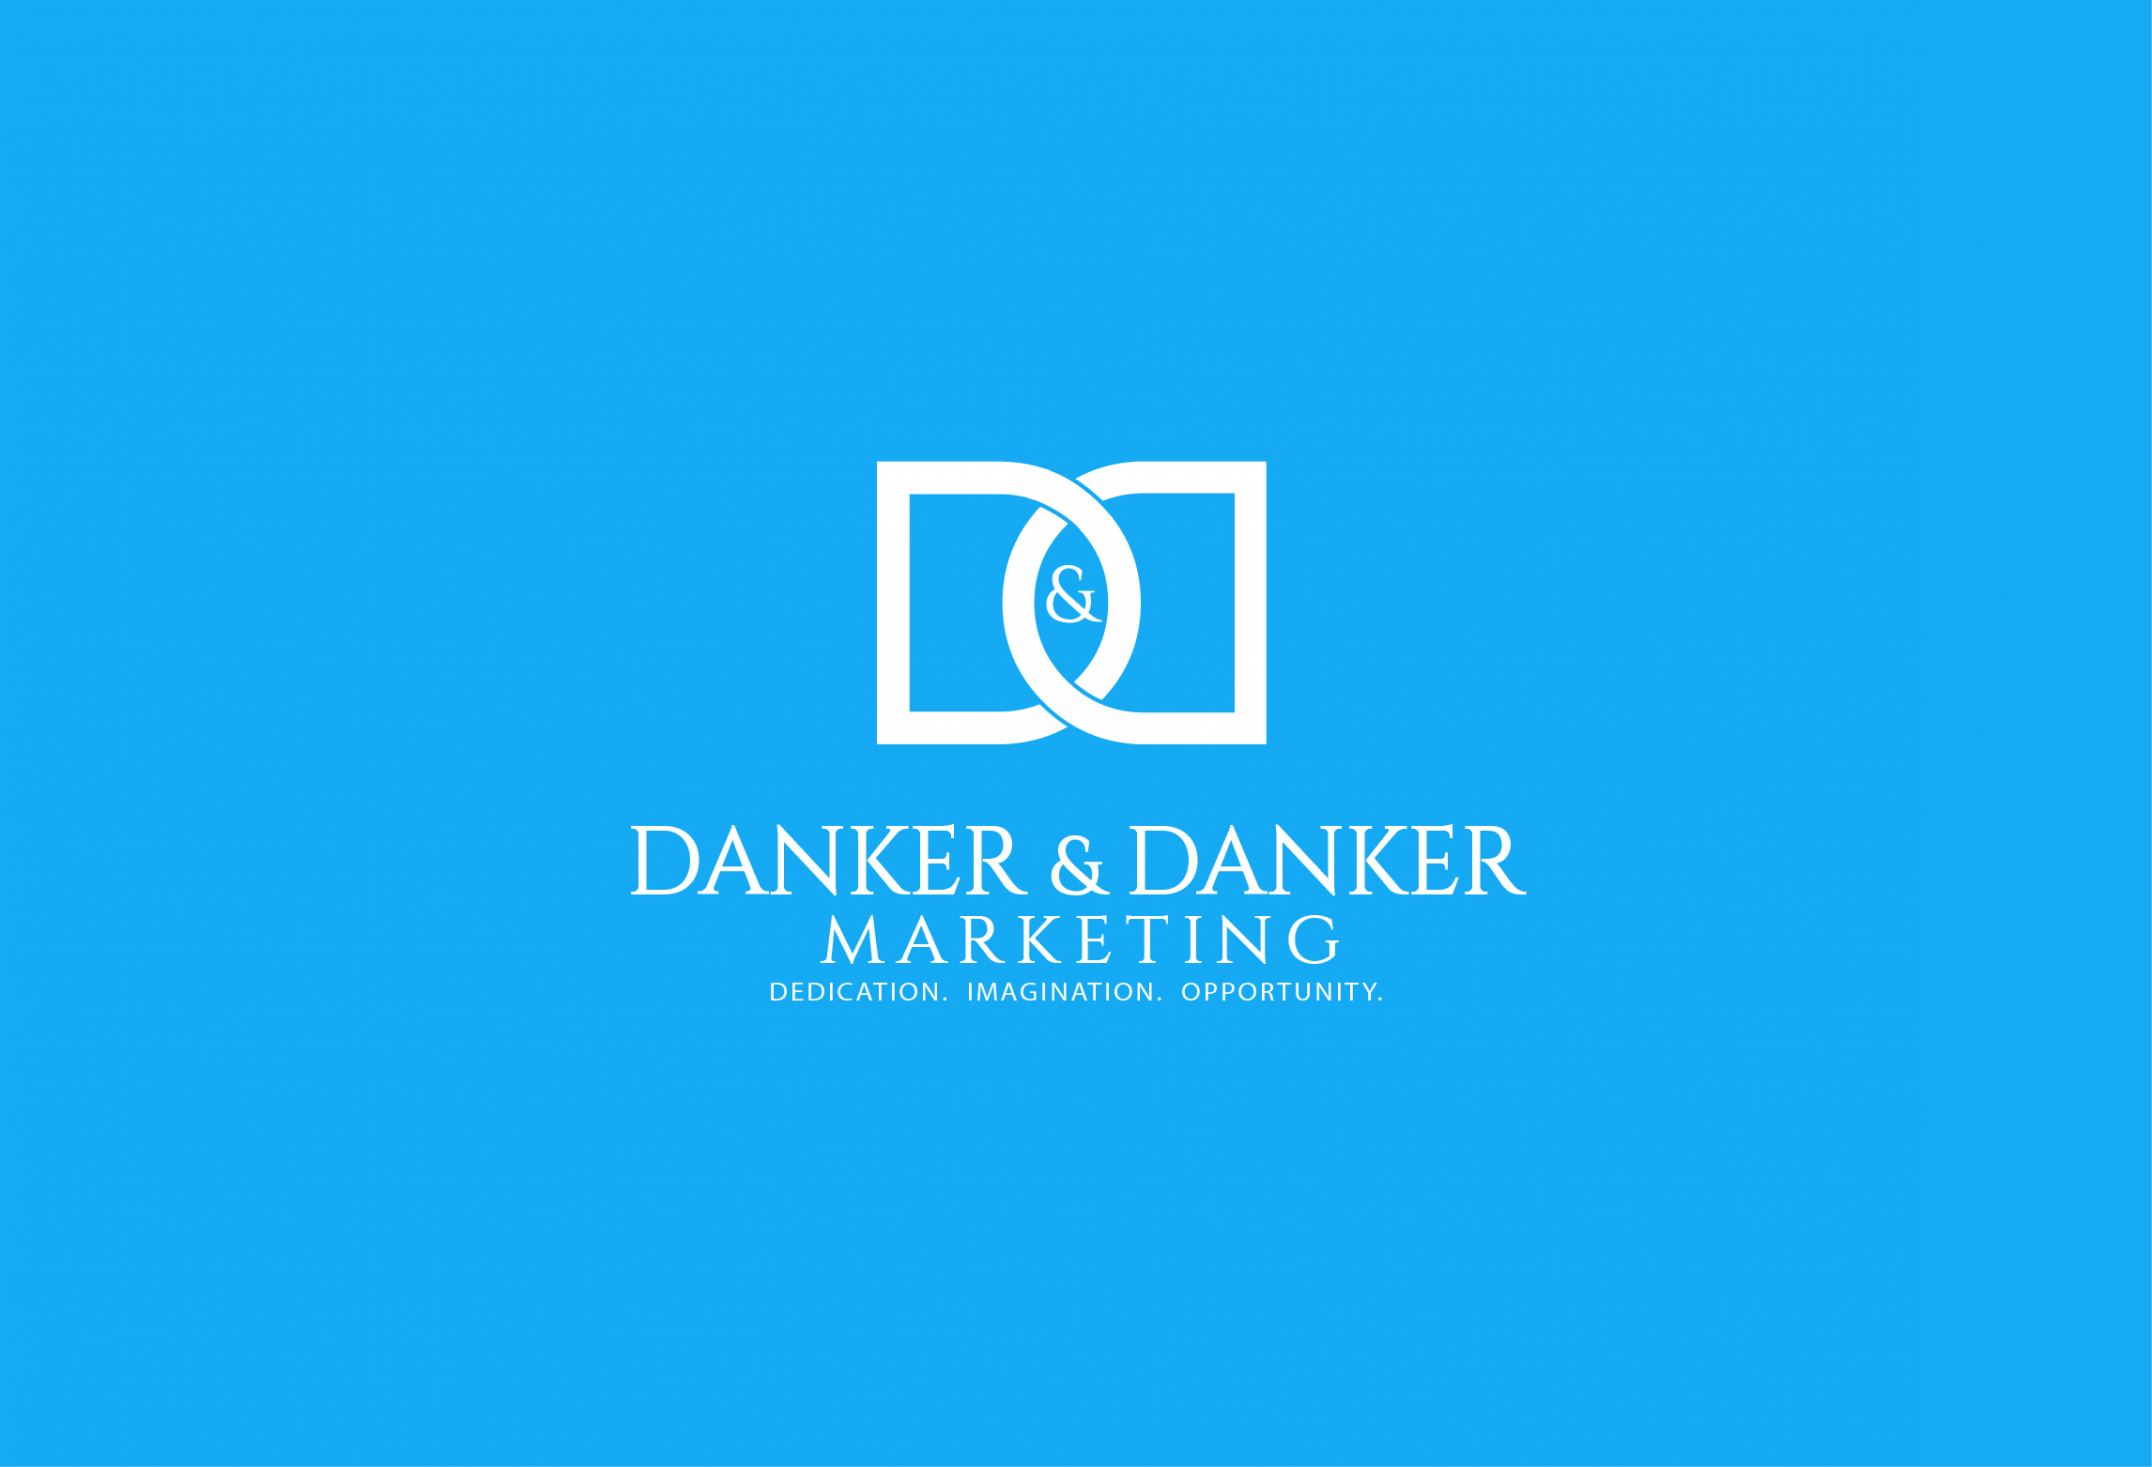 Danker&DankerPR/Marketing Logo